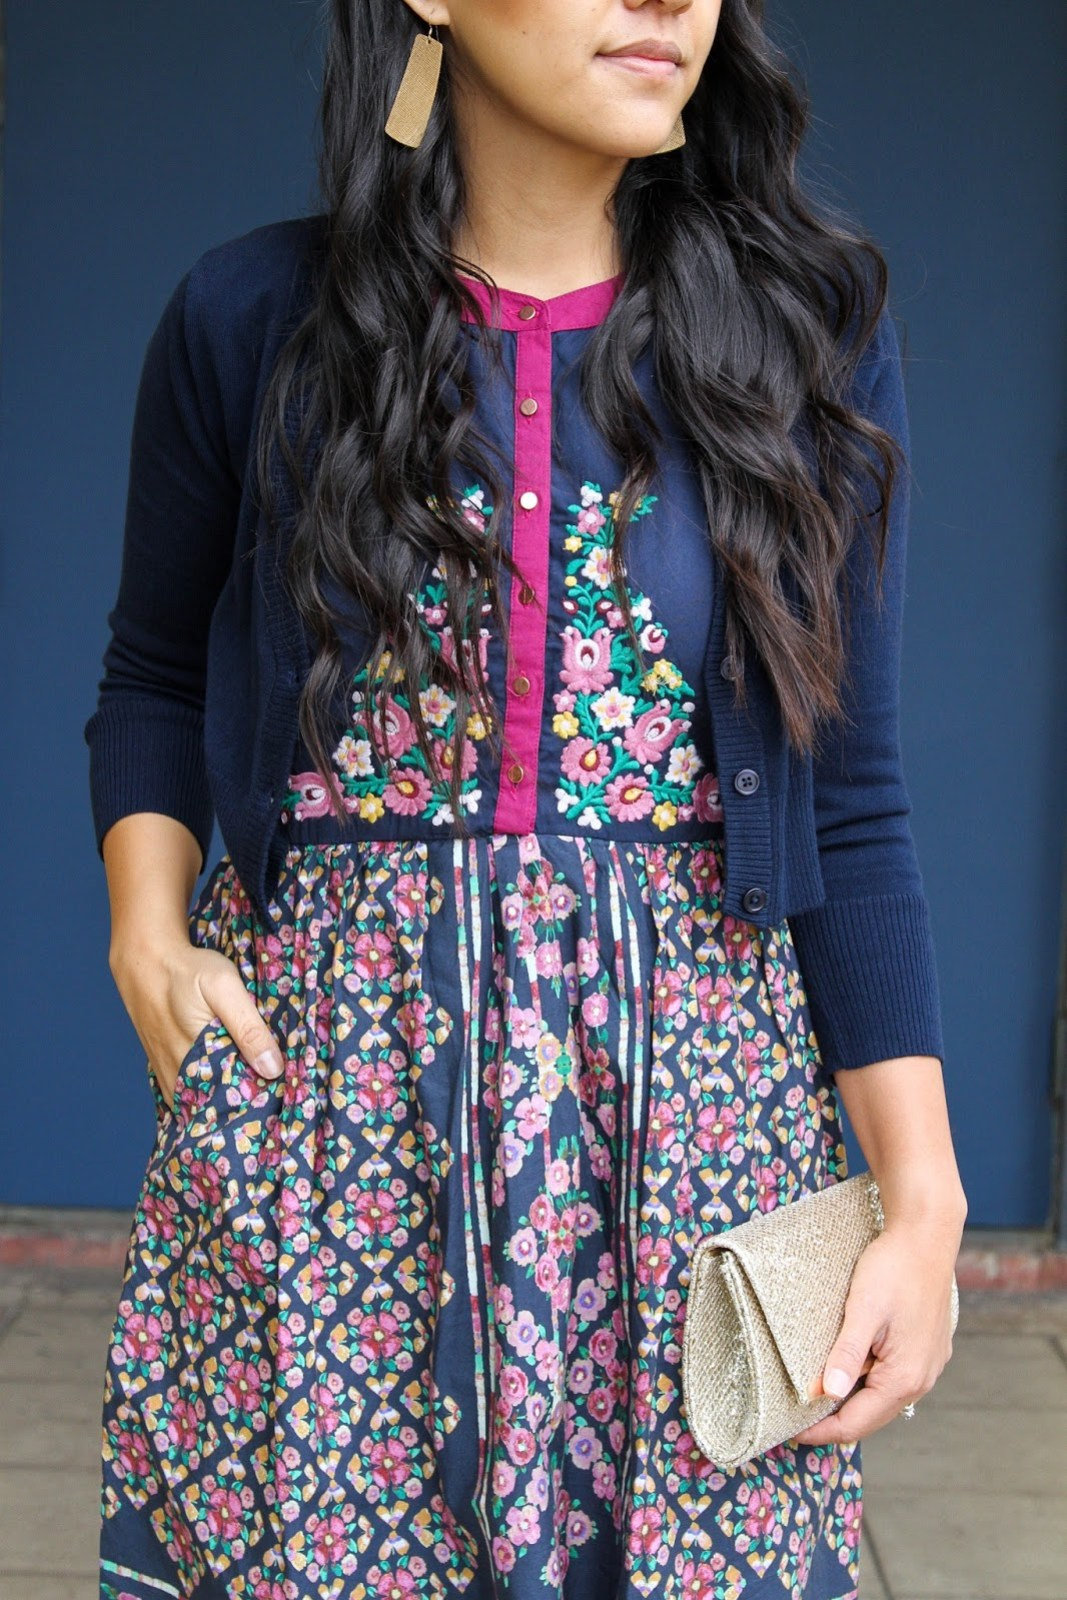 Navy Cardigan + Gold Earrings + Navy and Floral Dress